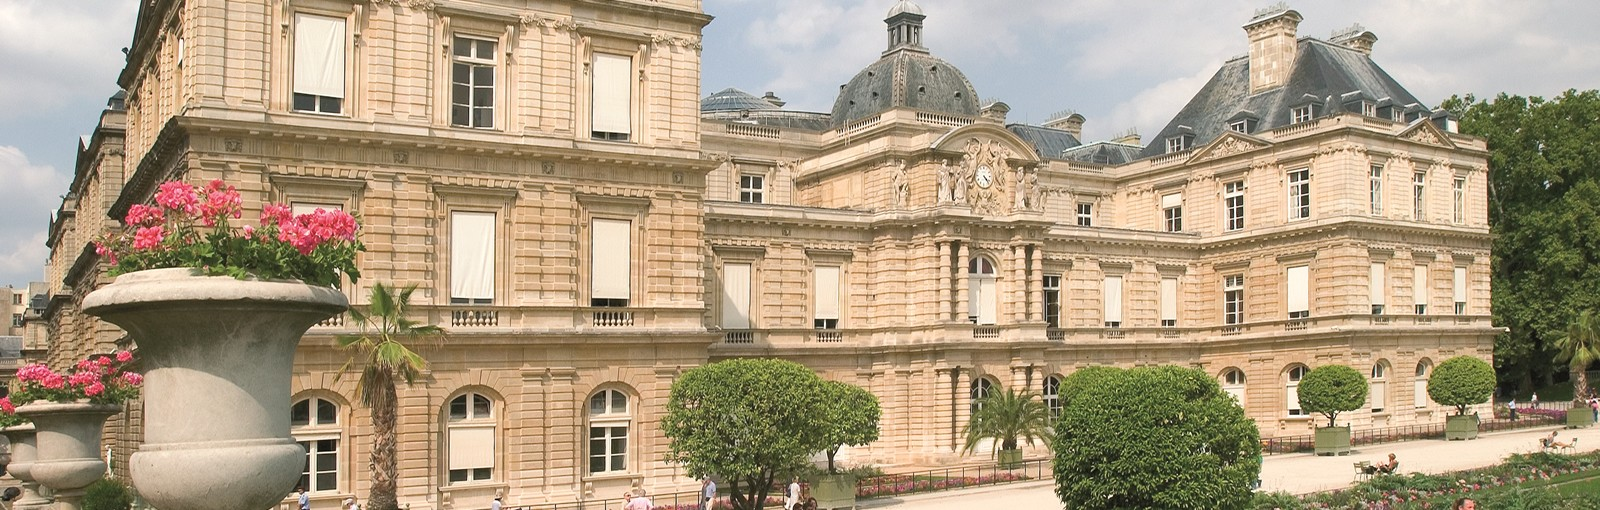 Tours The Latin quarter, the famous University of La Sorbonne, the Pantheon, the church of St Etienne-du-Mont, the Luxembourg Gardens - Walking tours - Paris Tours